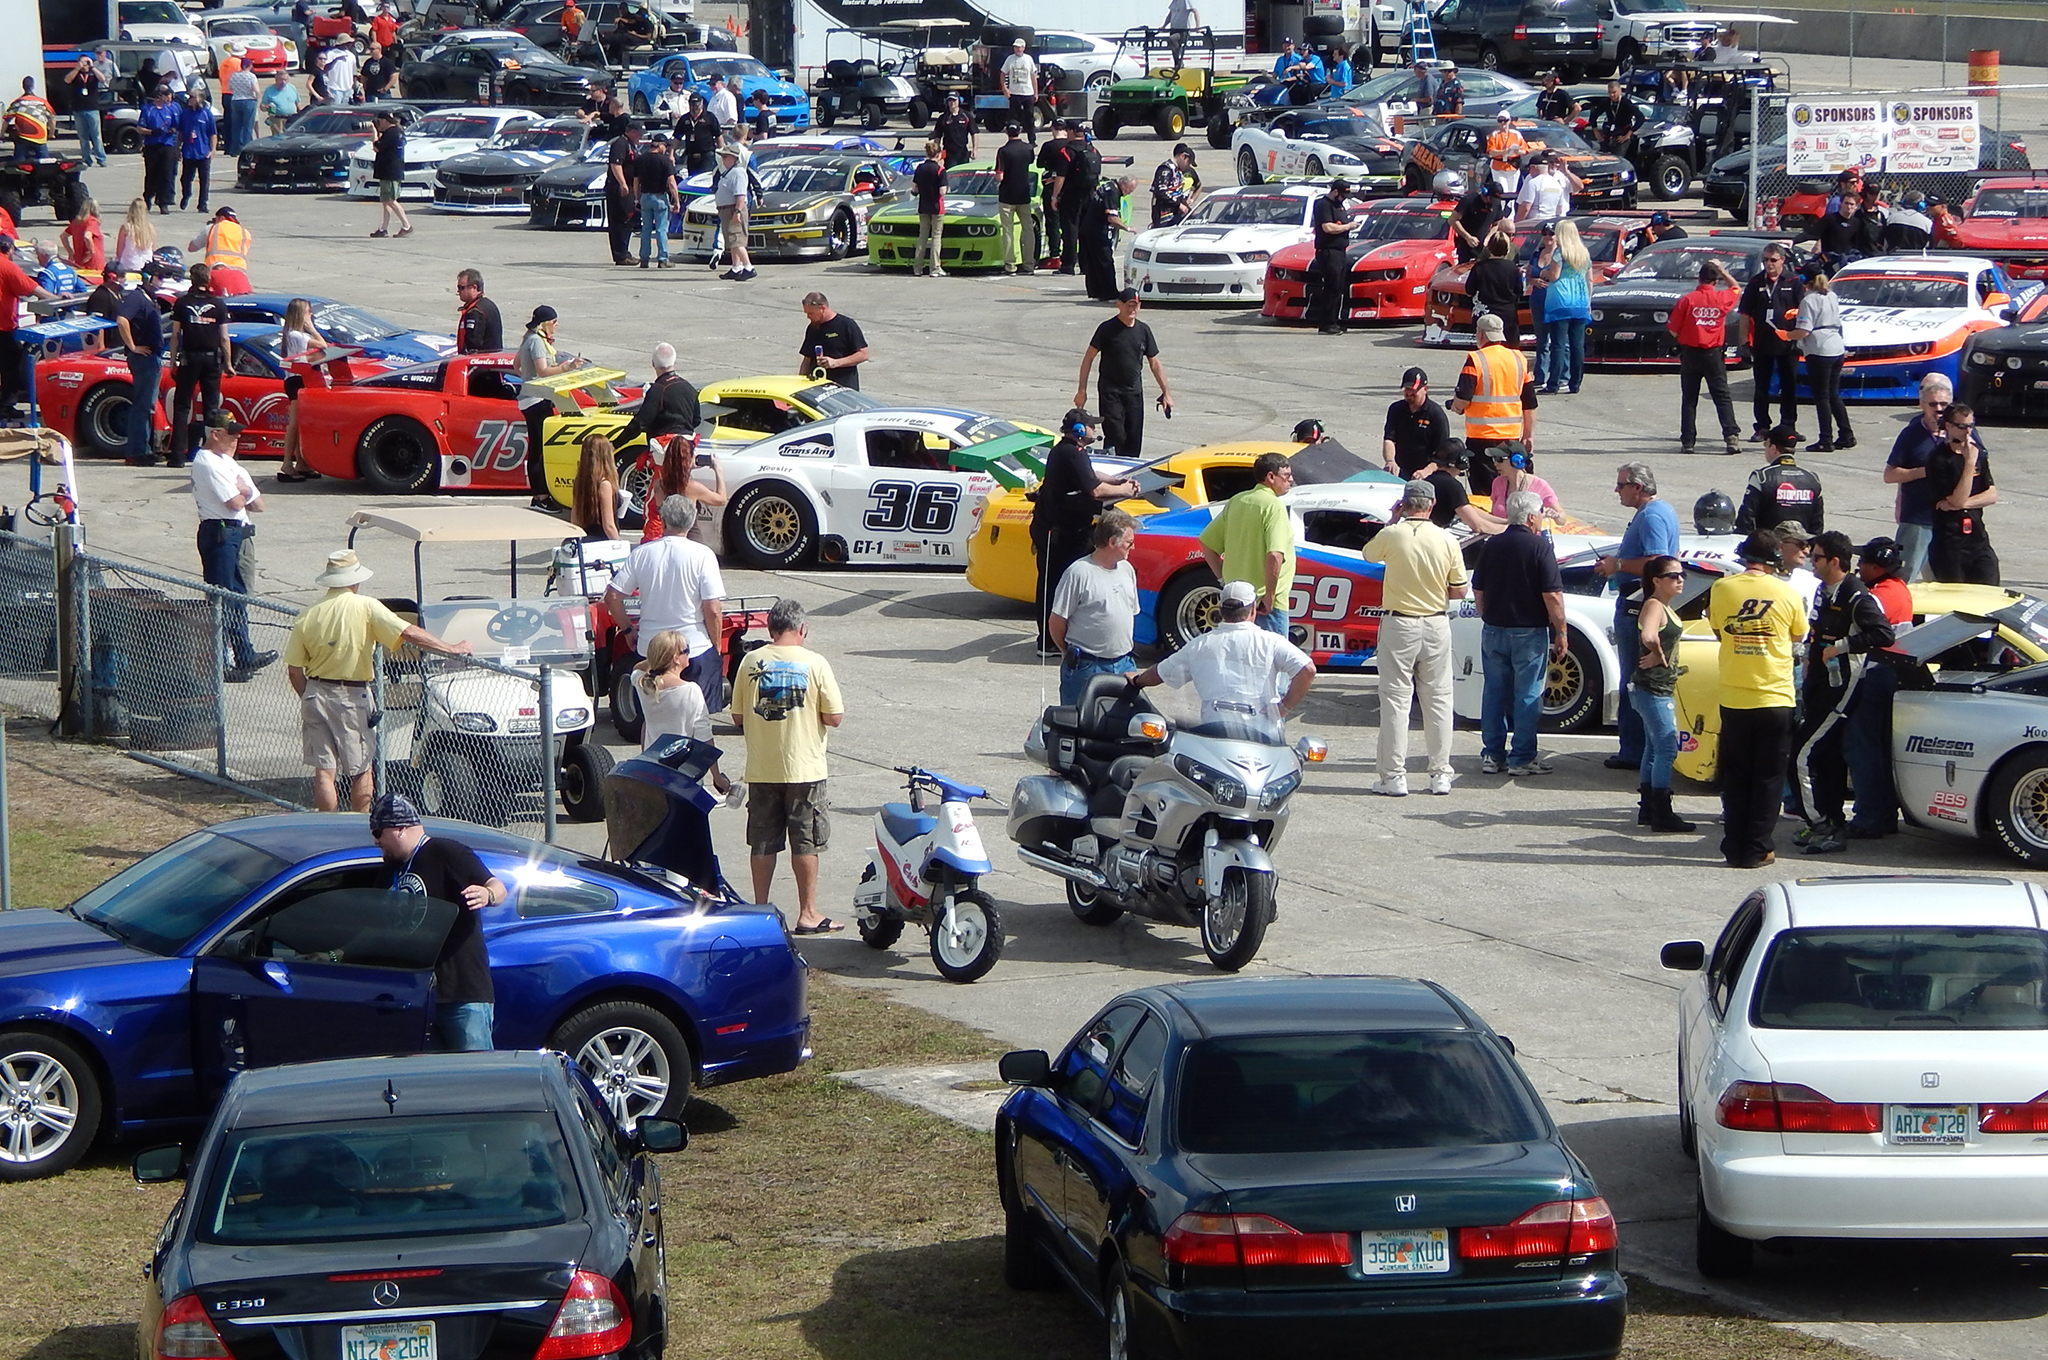 The staging area becomes very busy as the Trans-Am cars line up and drivers make final preparations.